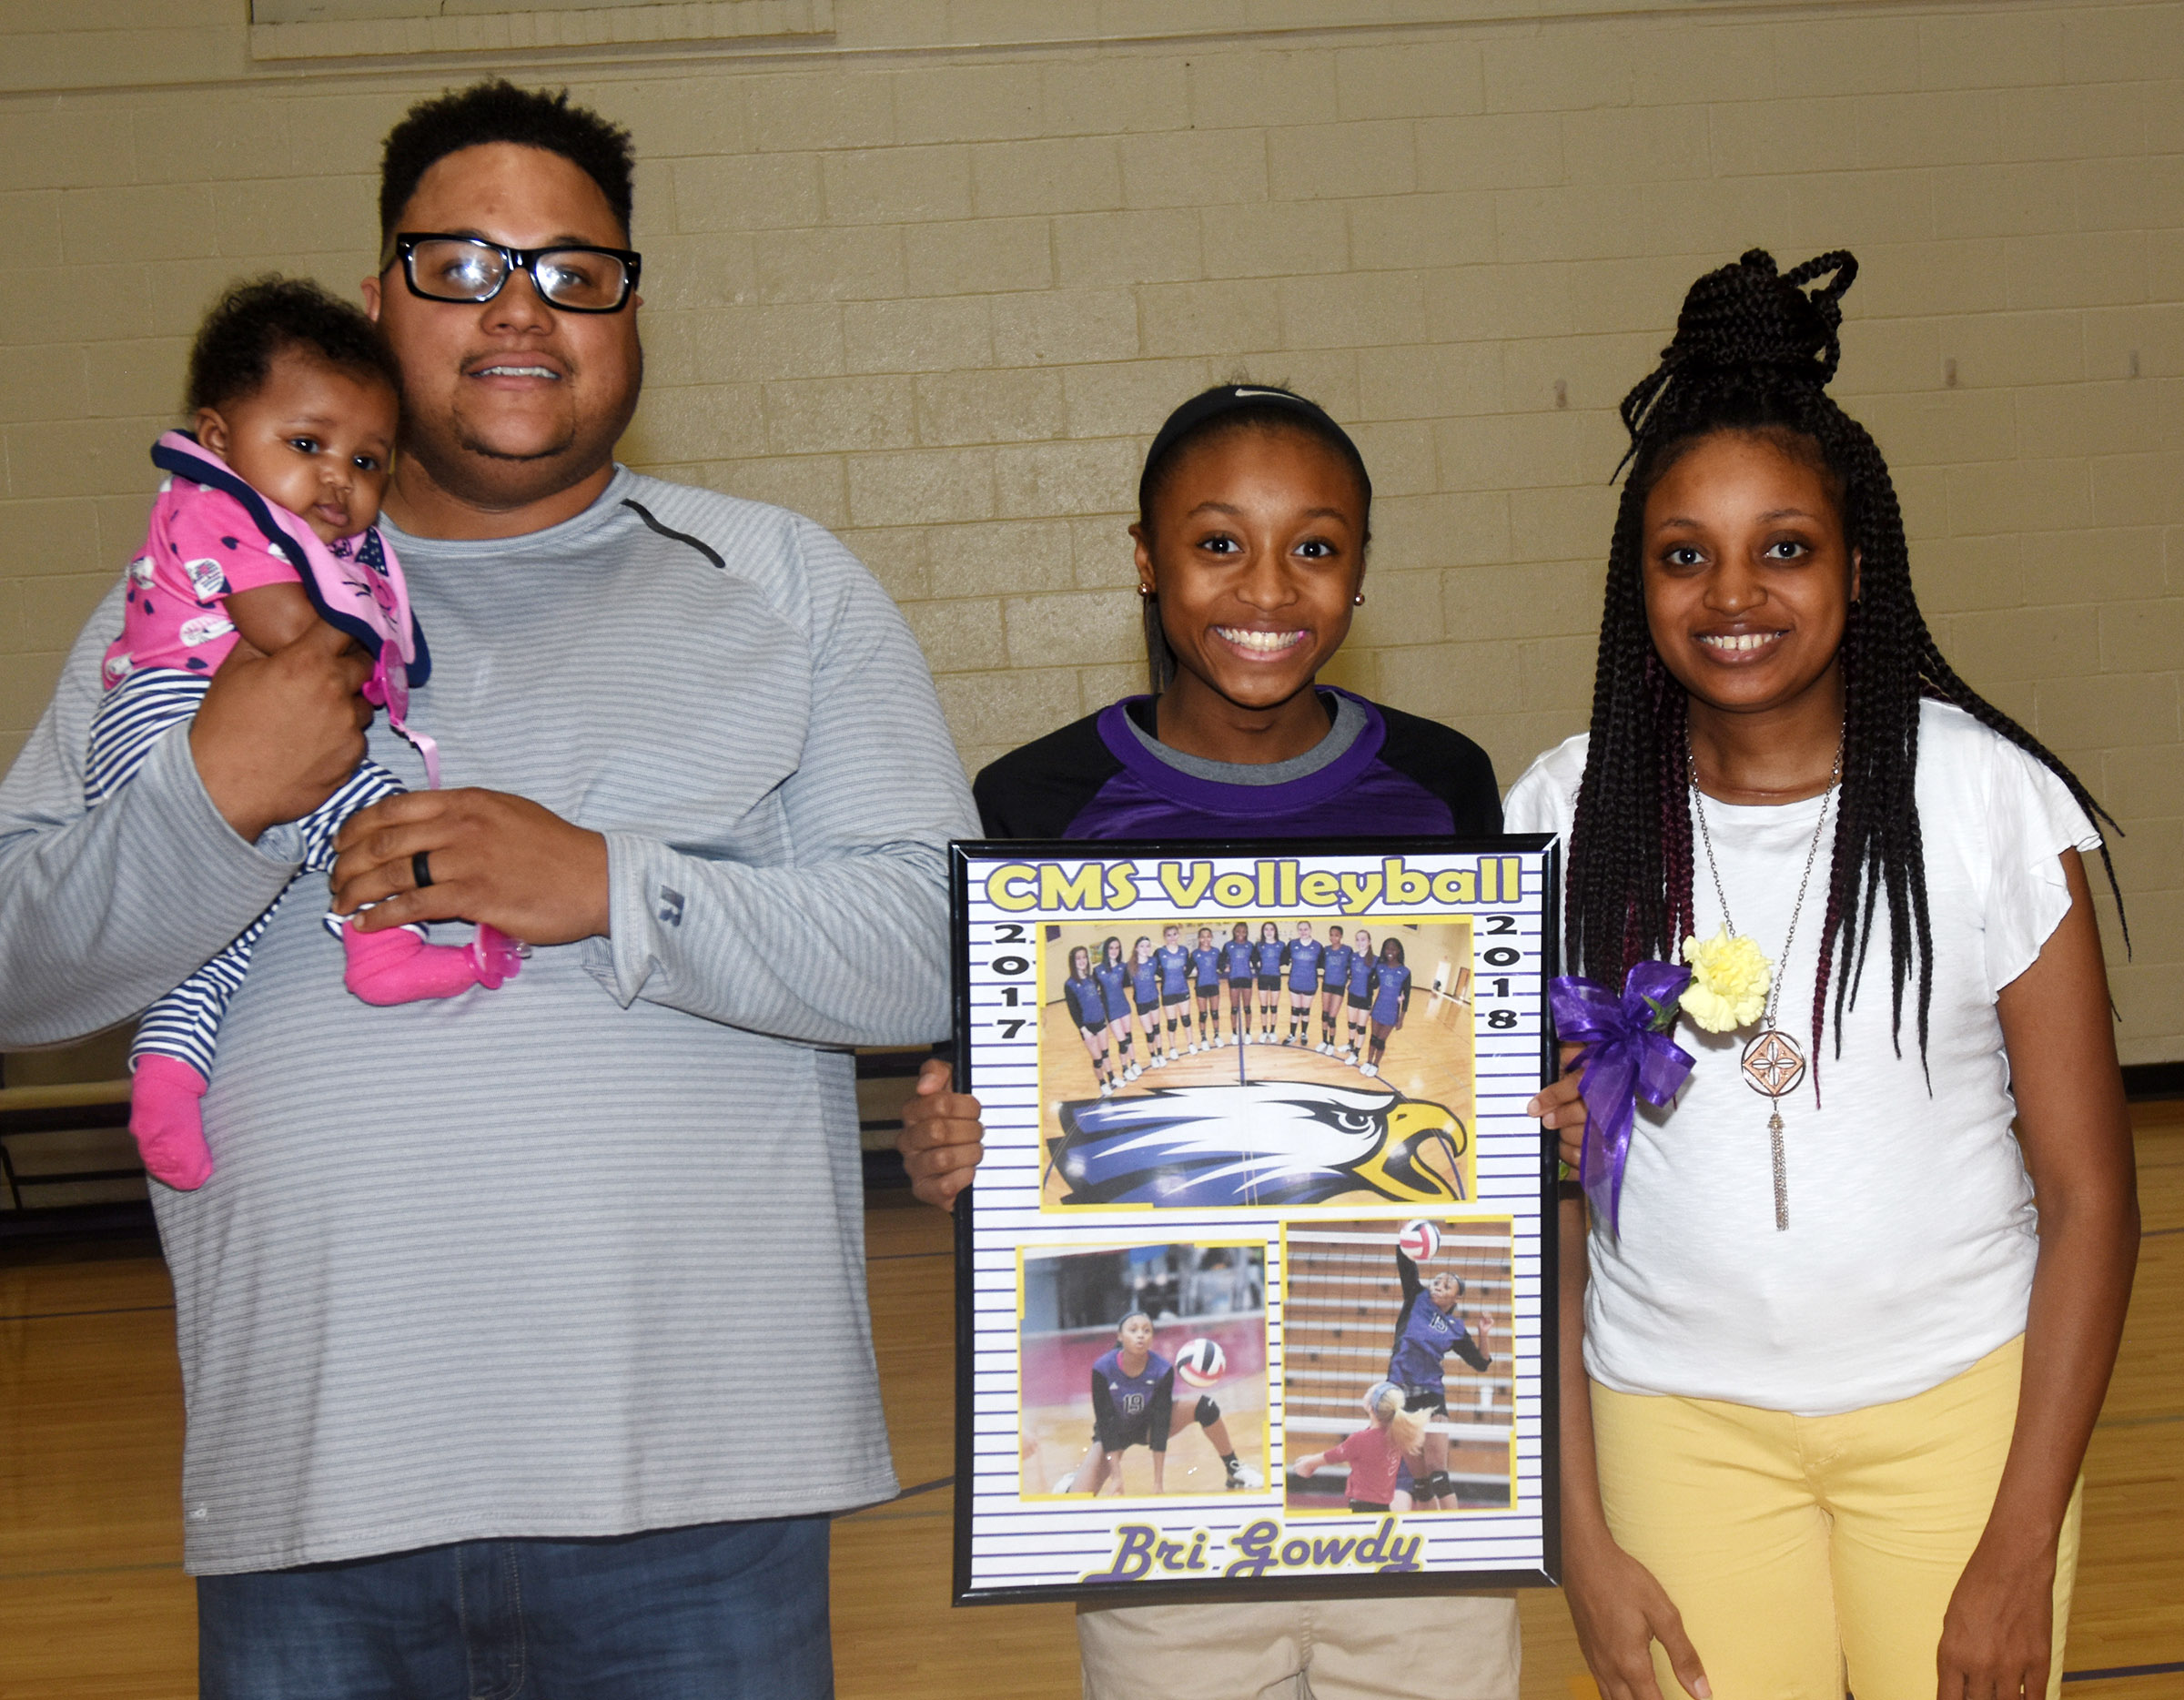 CMS eighth-grader Bri Gowdy is honored for her dedication and hard work this season. She is pictured with her parents, Bronson and Tonya, and her sister, Bronya'.